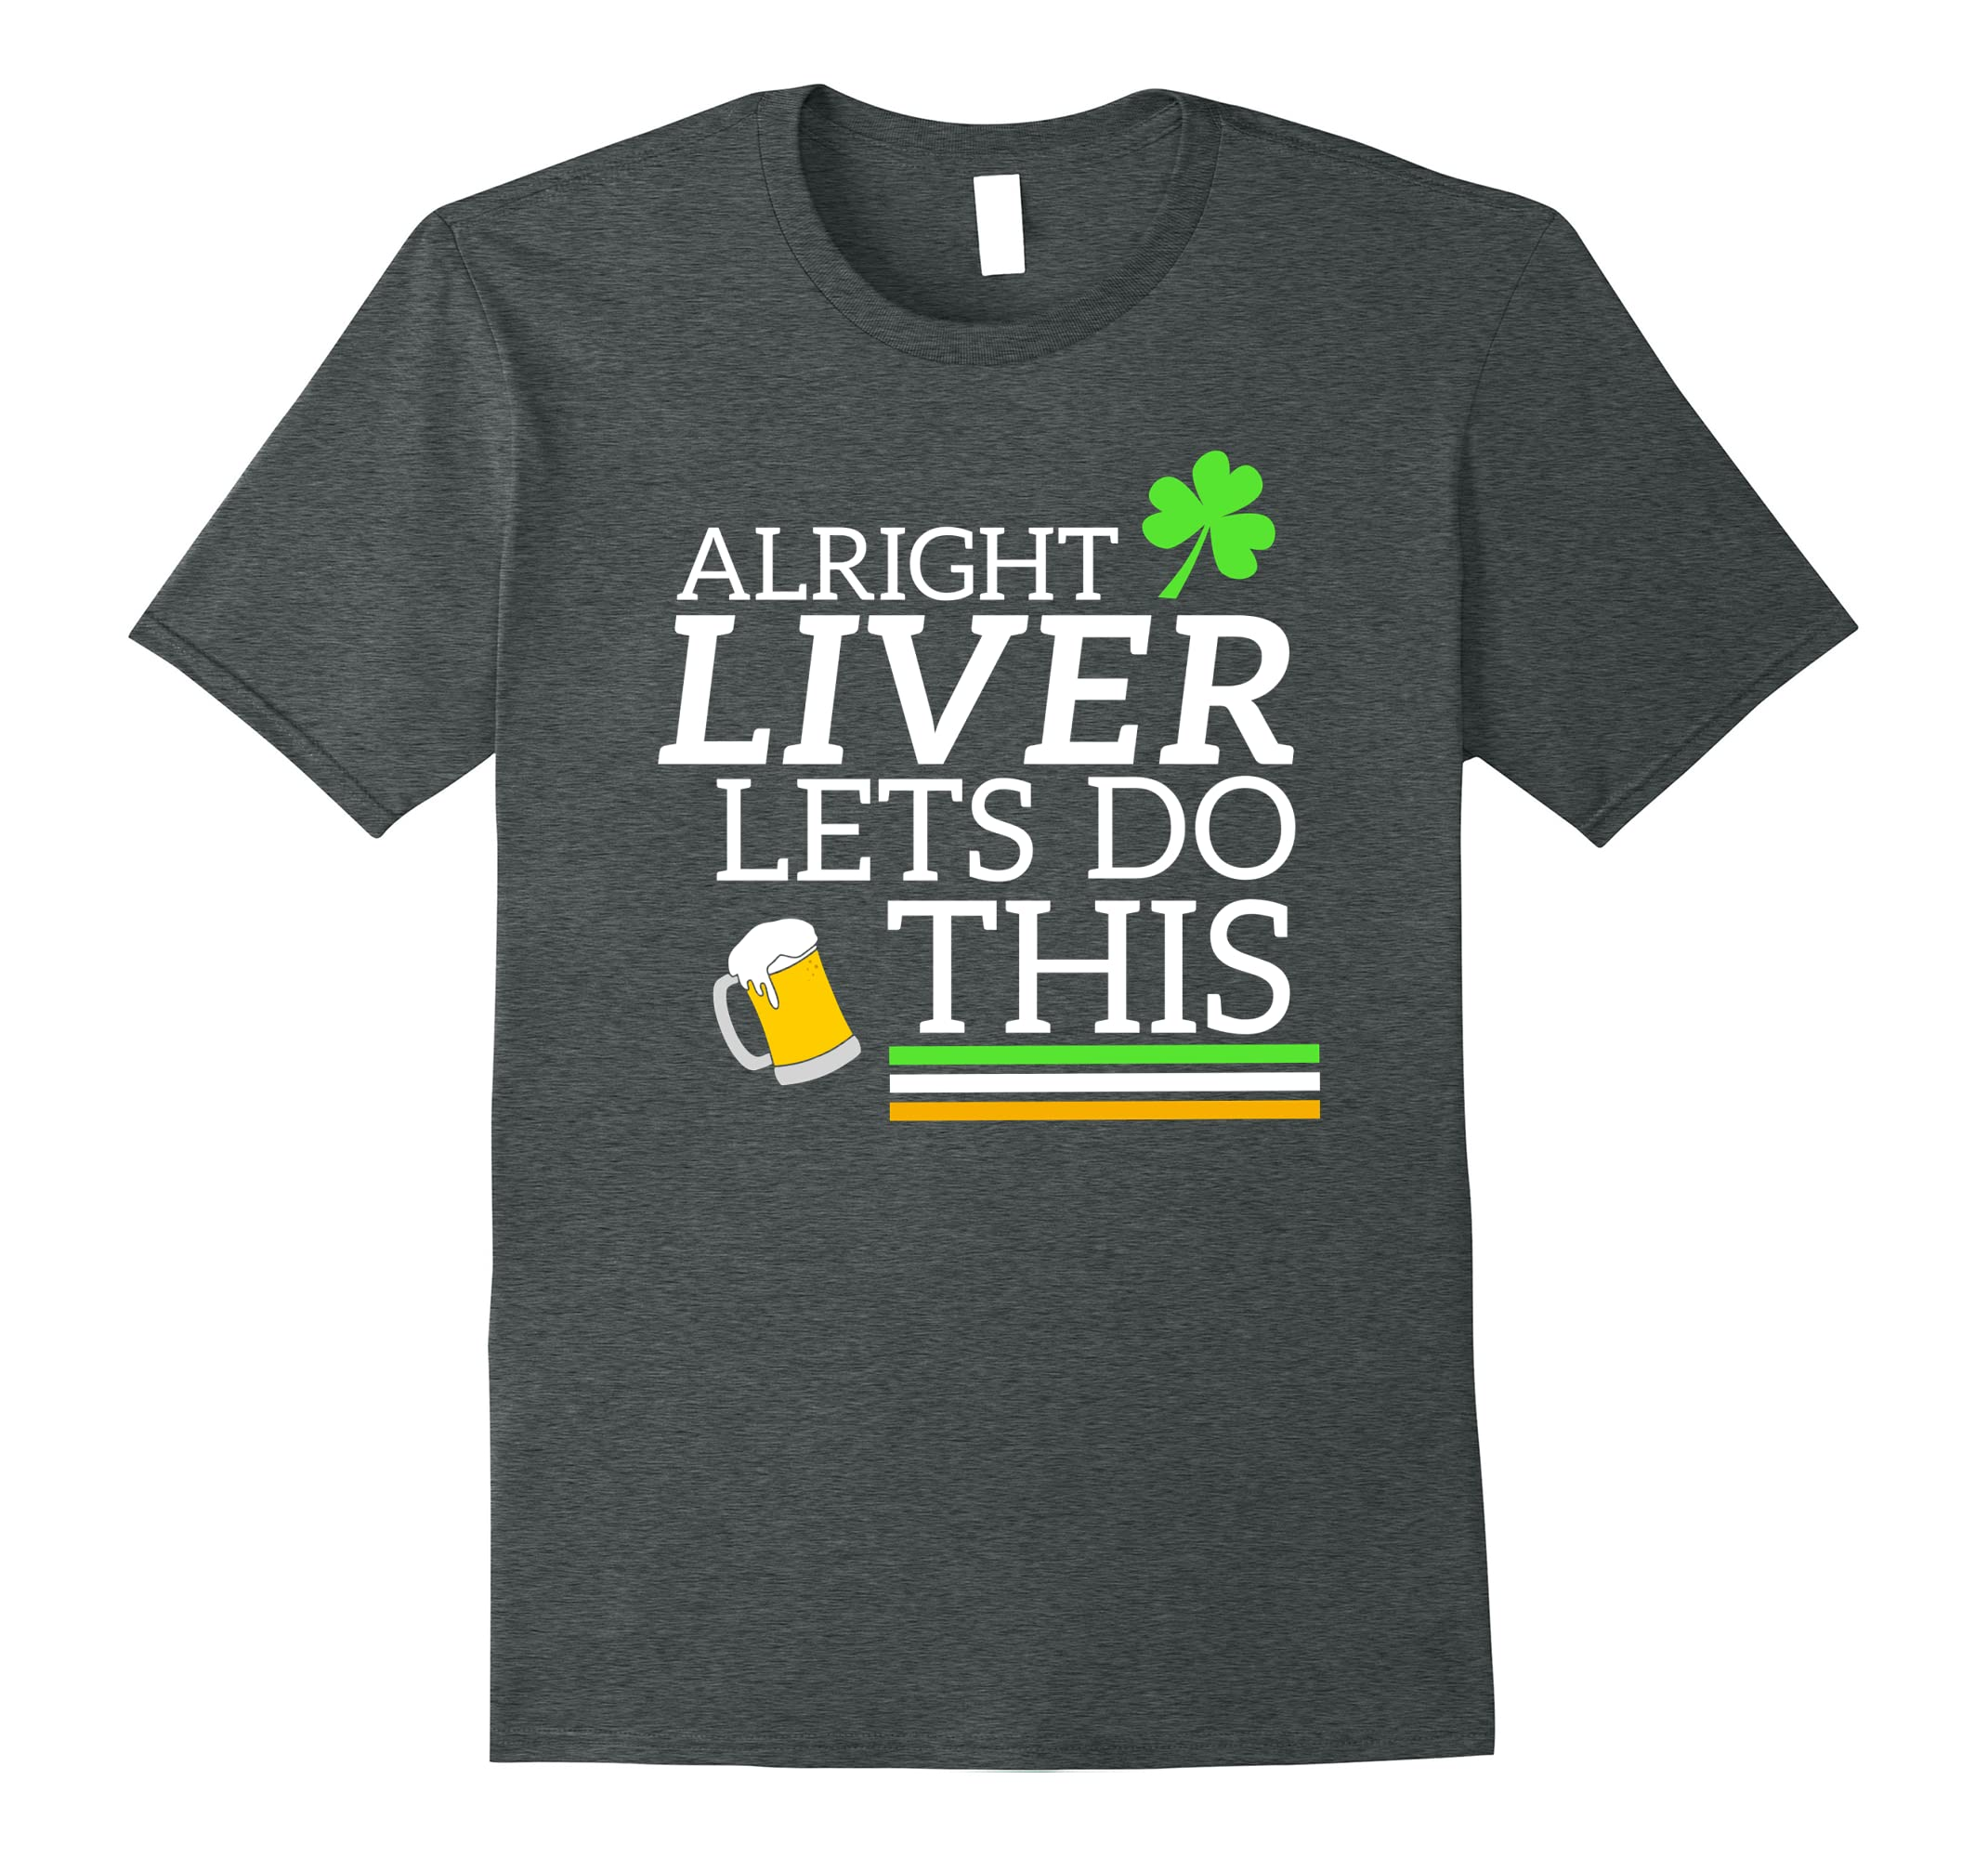 Alright Liver Lets Do This St Paddy's Day Drinking TShirt-ah my shirt one gift